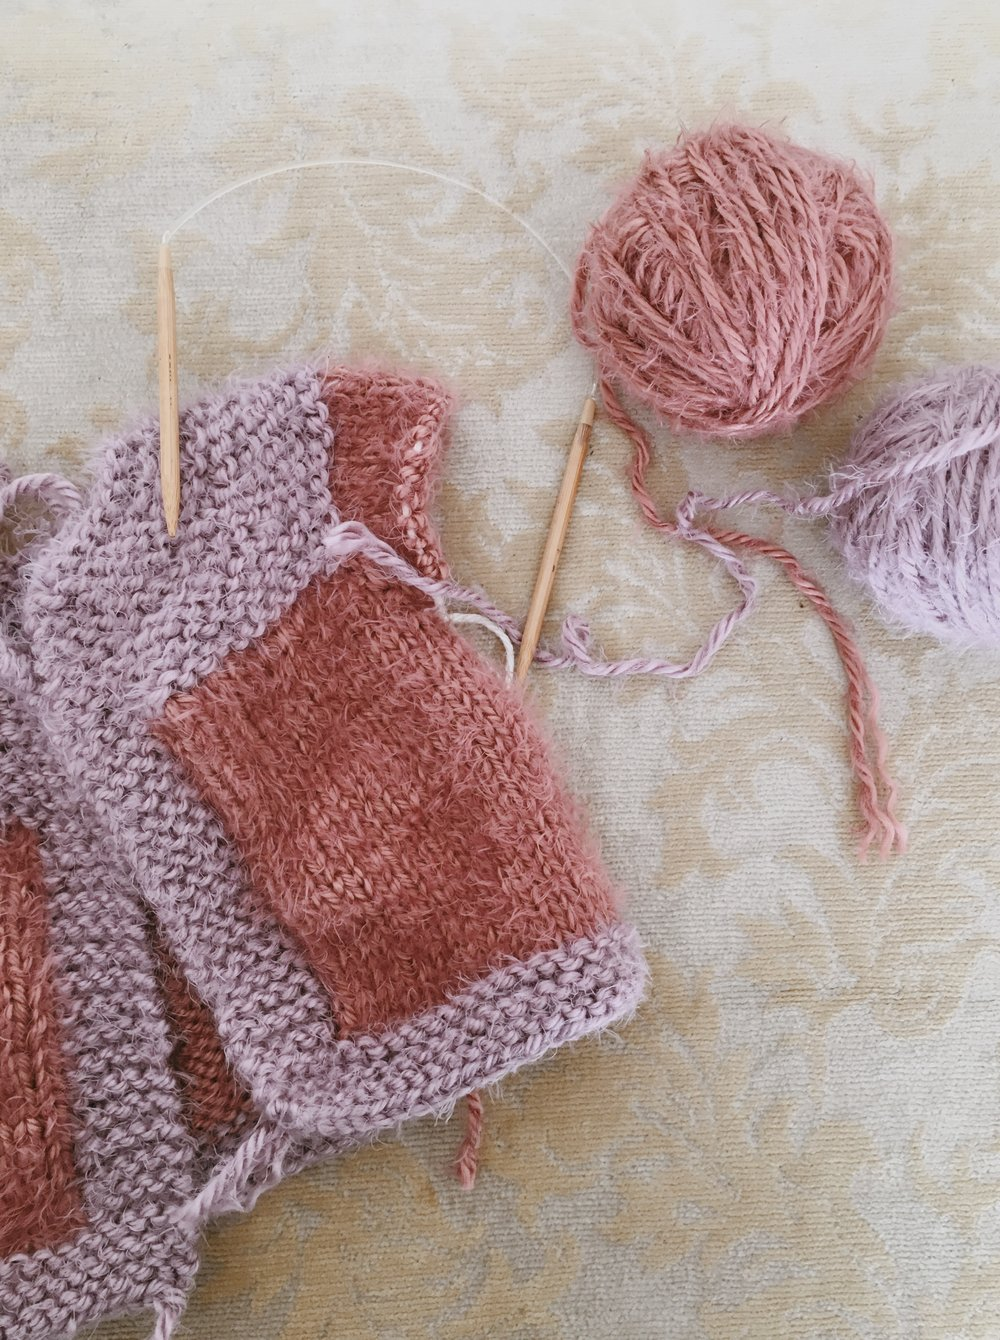 knitting sleeves with a circular needle on baby sweater